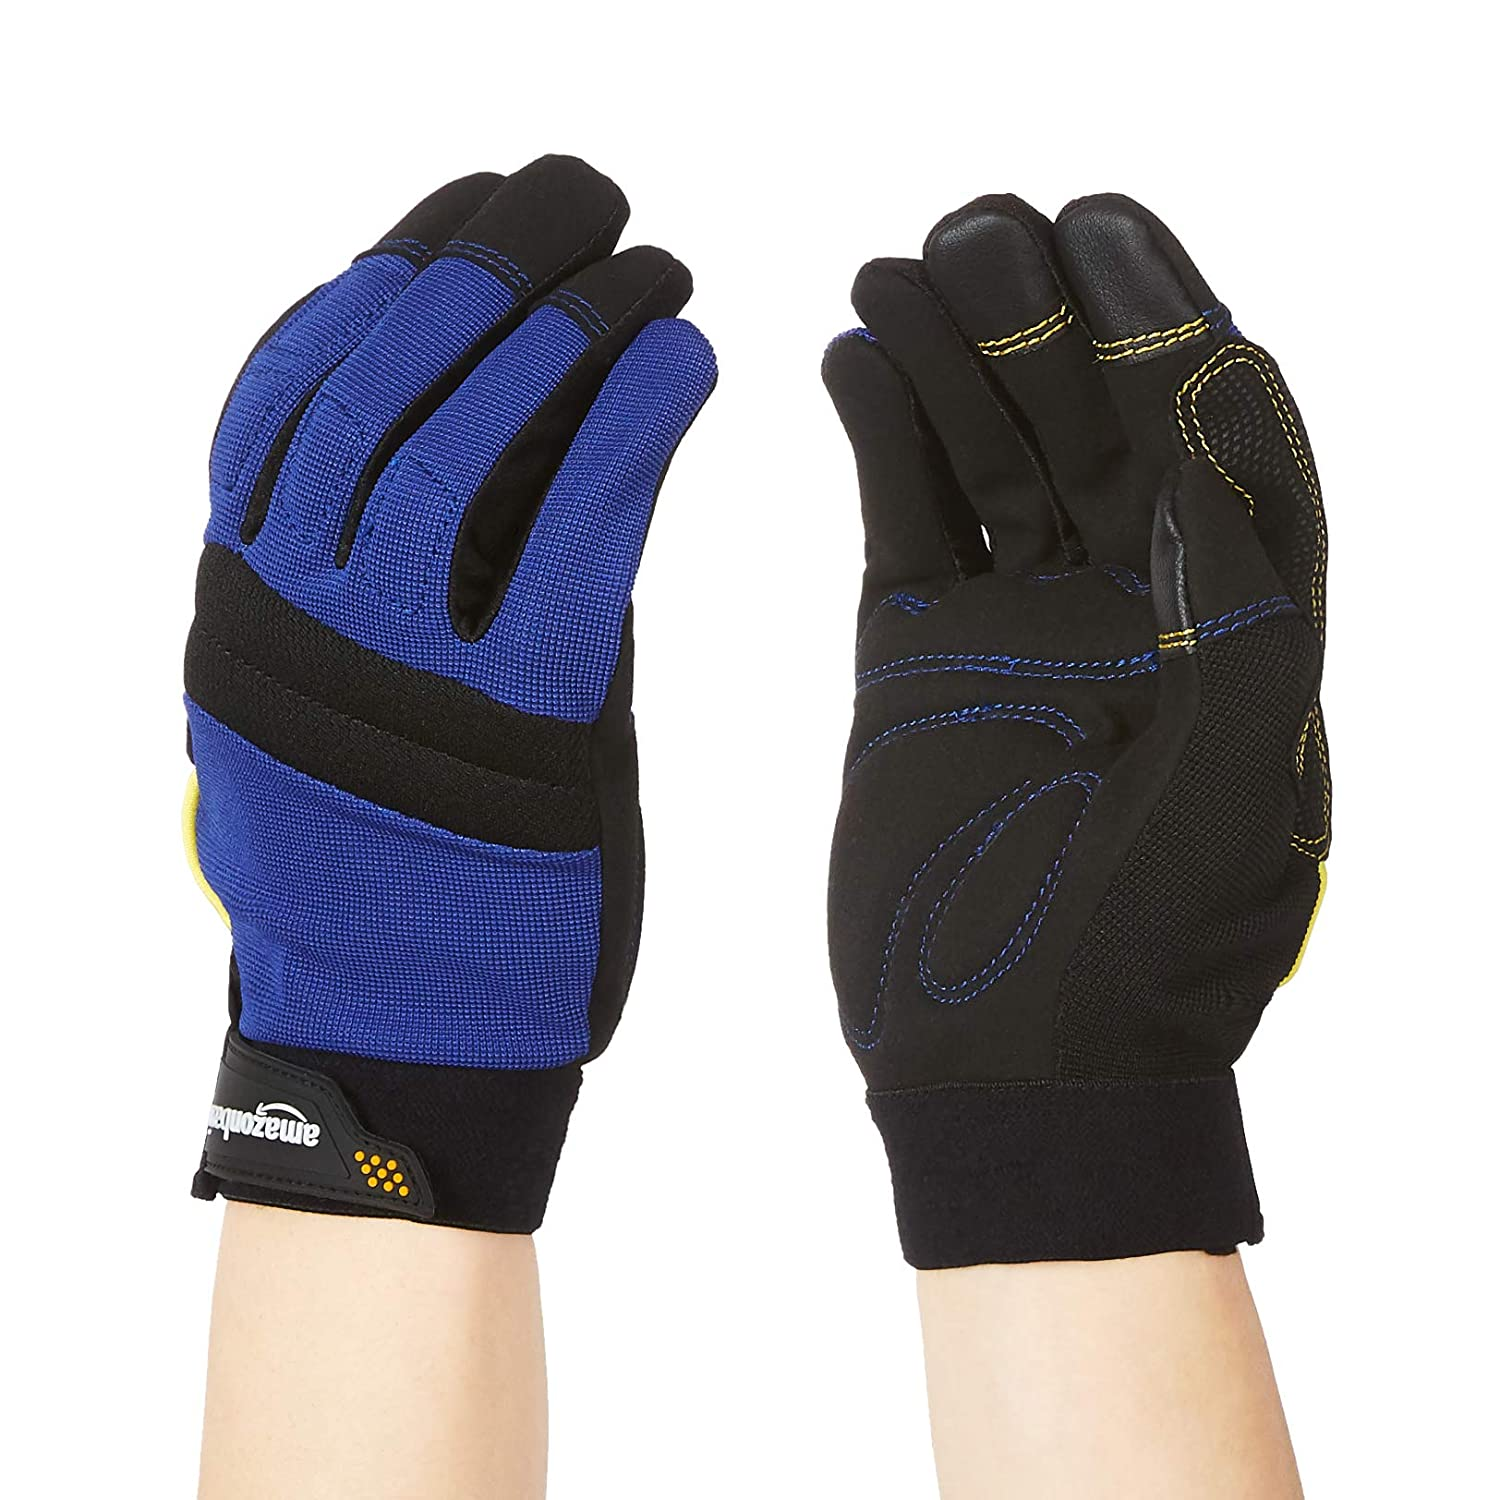 AmazonBasics Enhanced Flex Grip Work Gloves - Medium, Blue